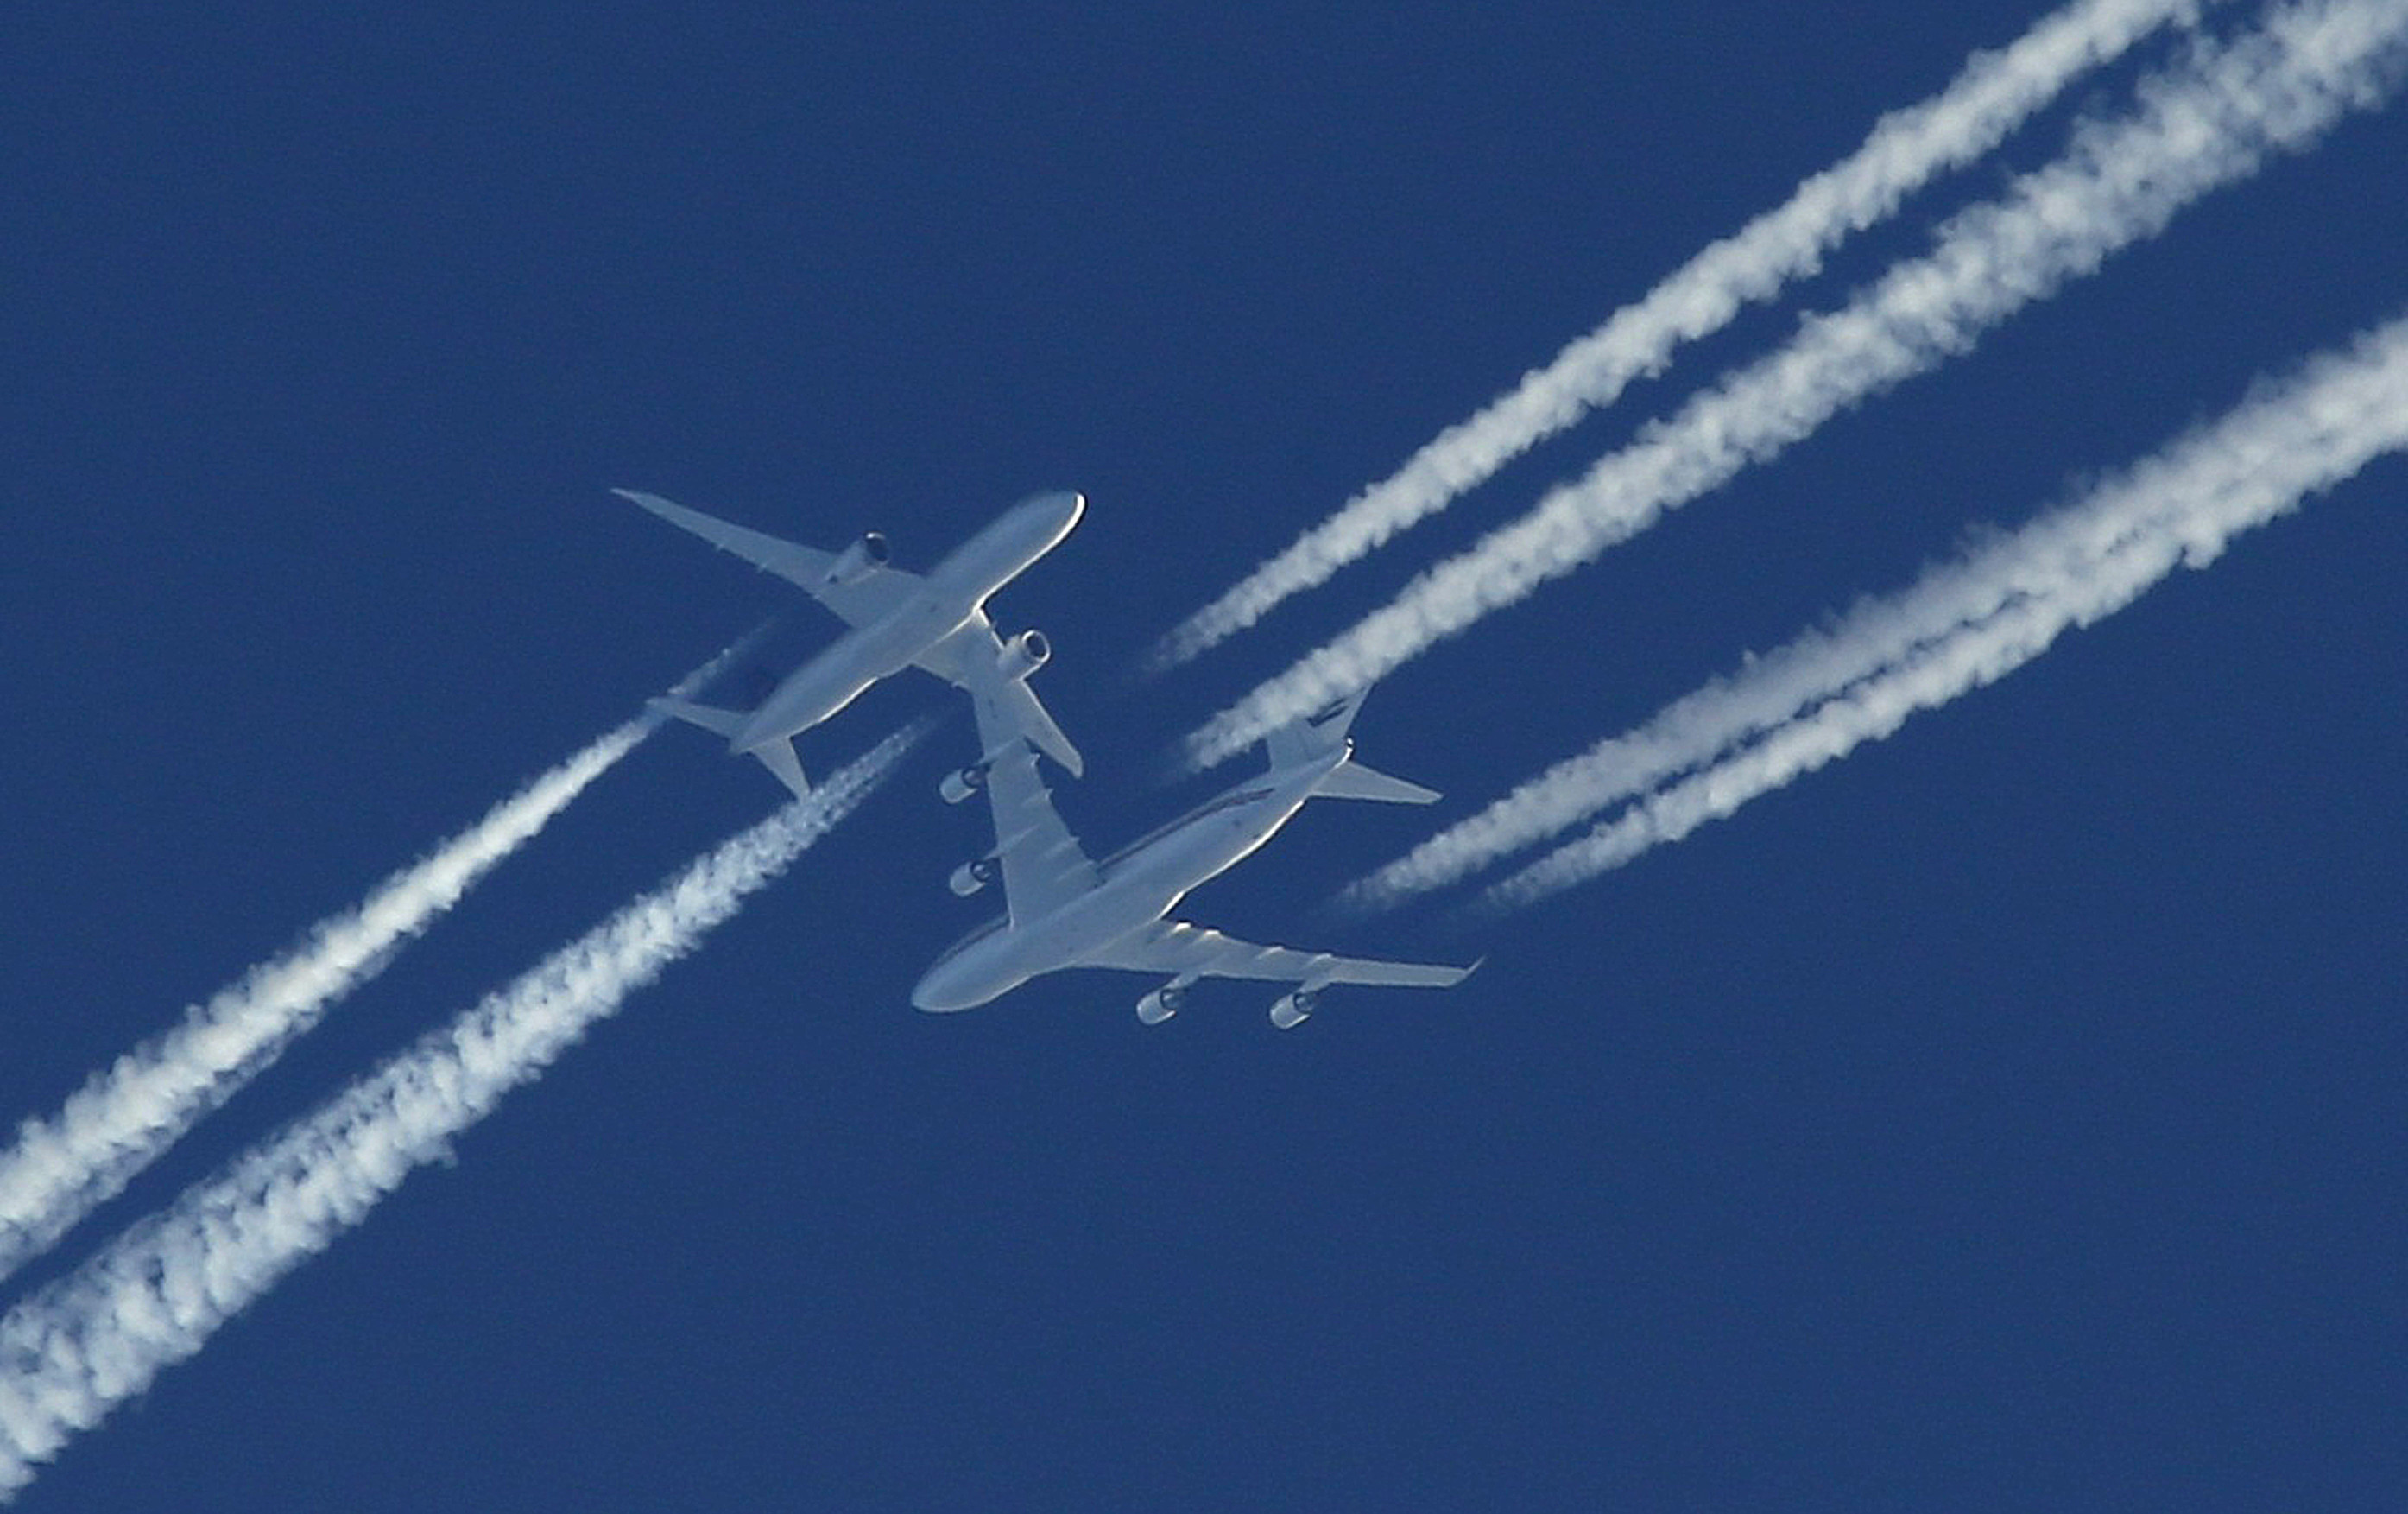 Two airline planes pass each  other in the sky going opposite directions